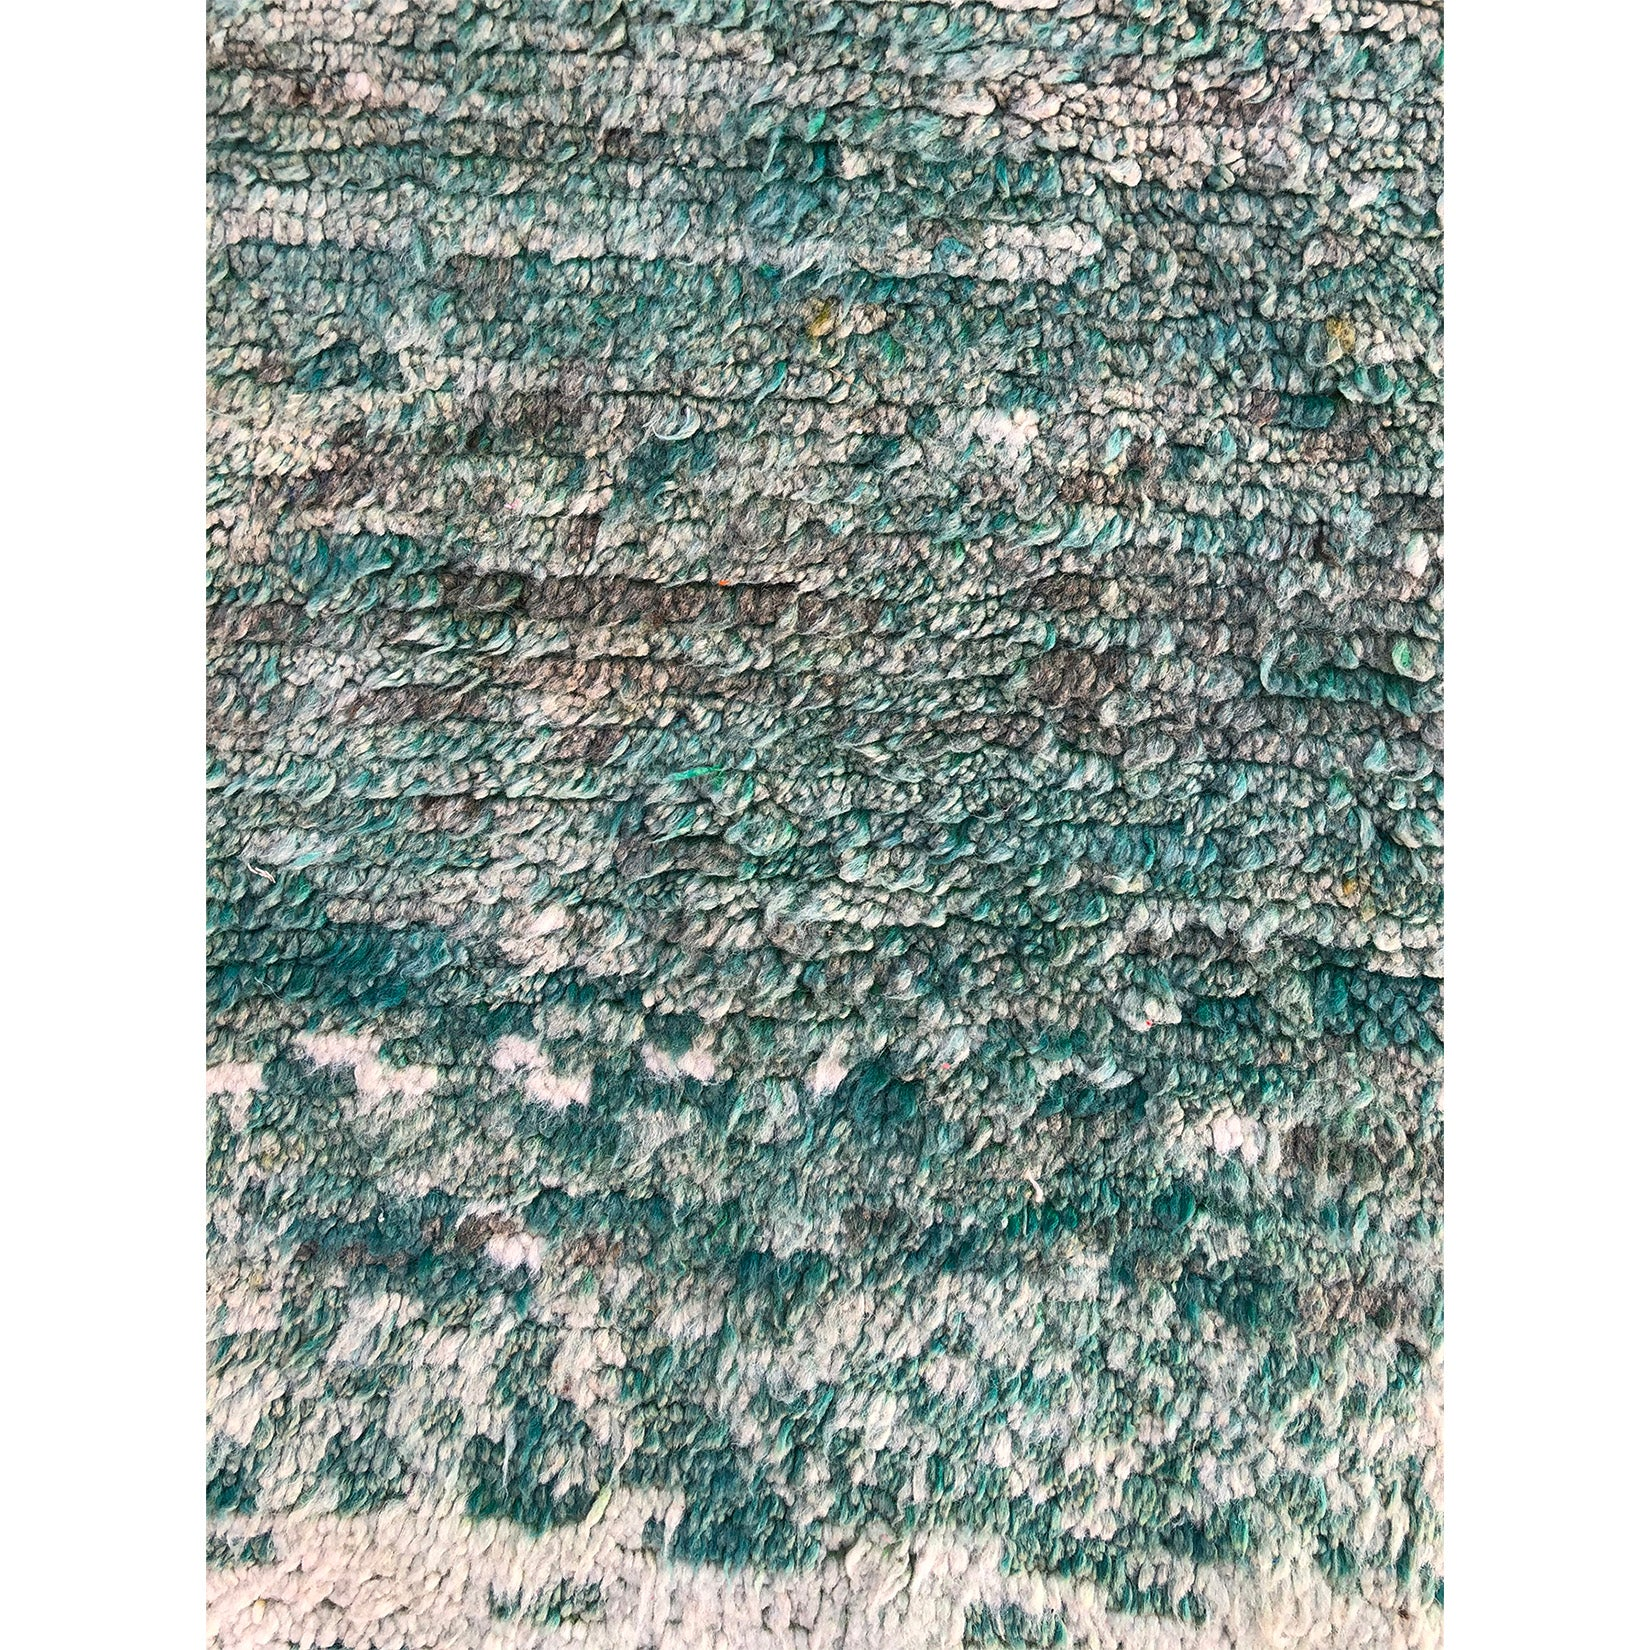 Authentic bohemian berber carpet  - Kantara | Moroccan Rugs